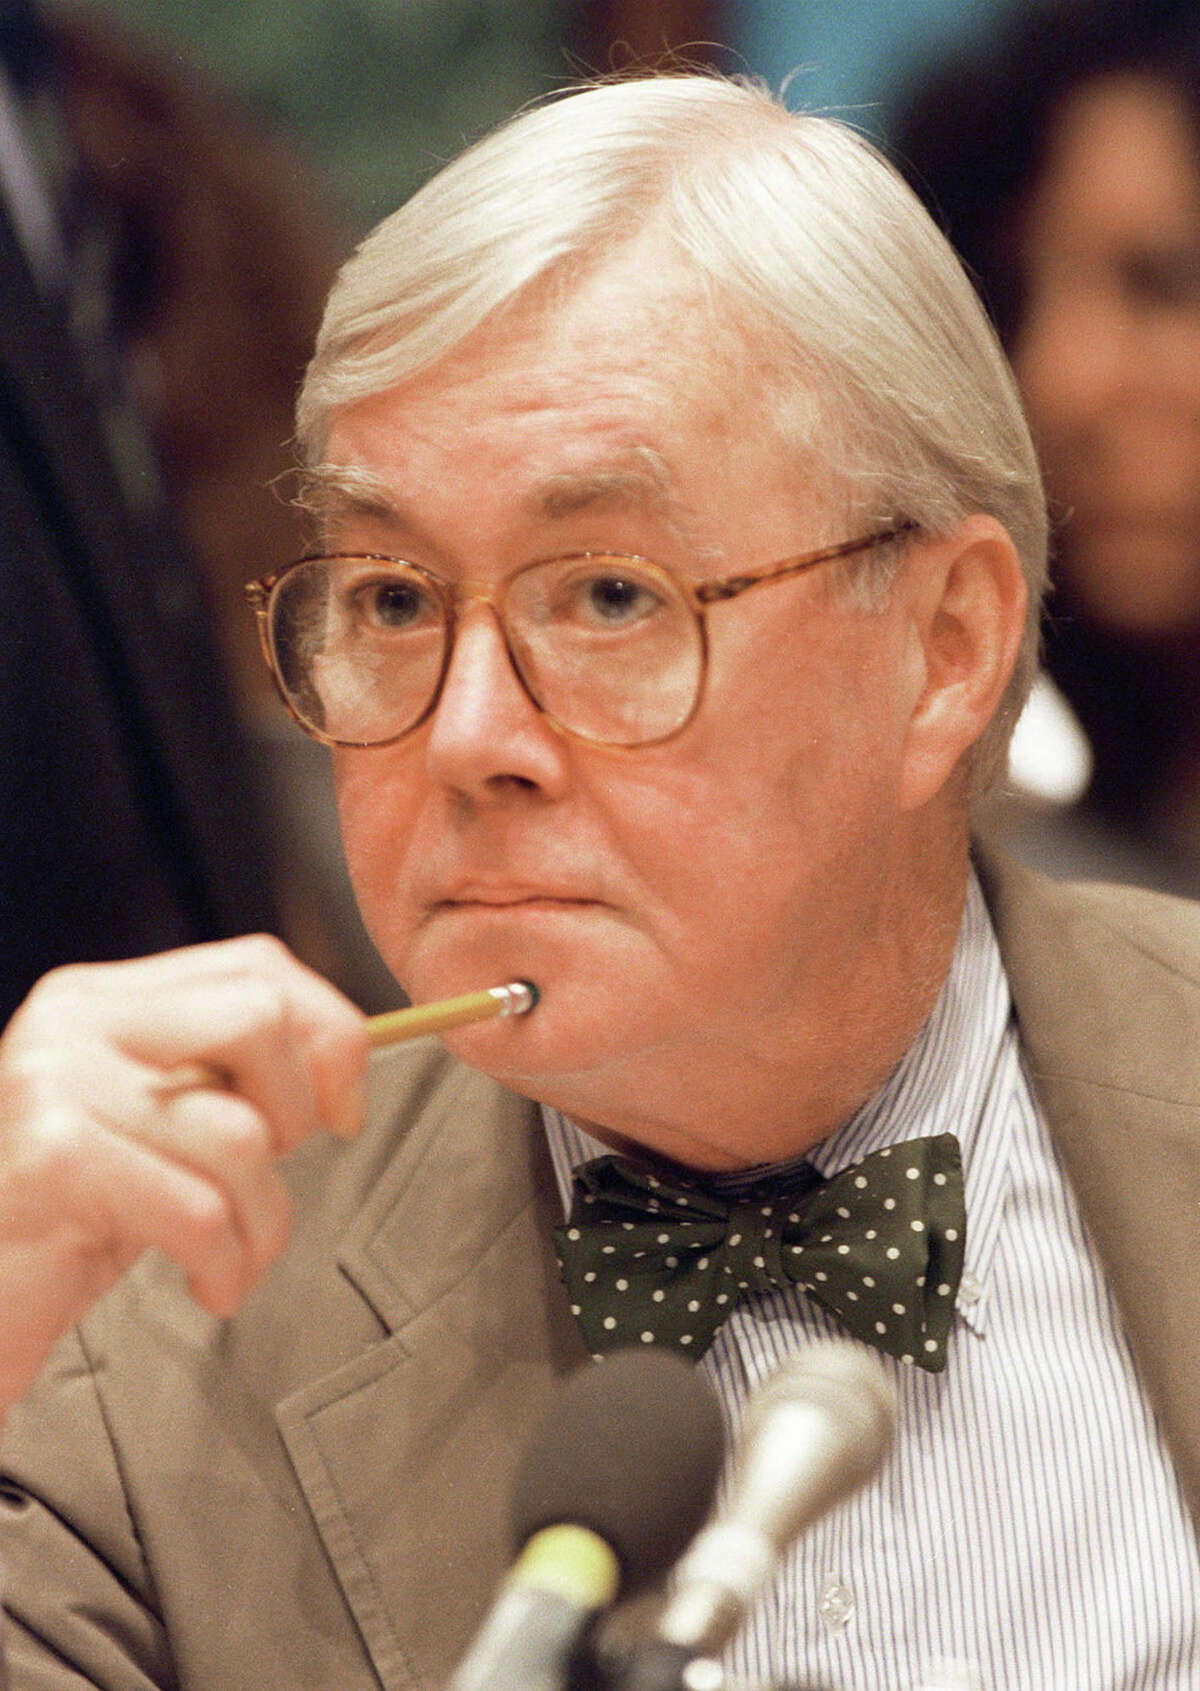 **FILE** New York Senator Daniel Patrick Moynihan is seen on Capitol Hill in this July 2, 1994 file photo. Moynihan, a New York City shoe shine boy who became an iconoclastic scholar-politician and served four terms in the Senate, died Wednesday, March 26, 2003. He was 76. (AP Photo/Mark Wilson, File)